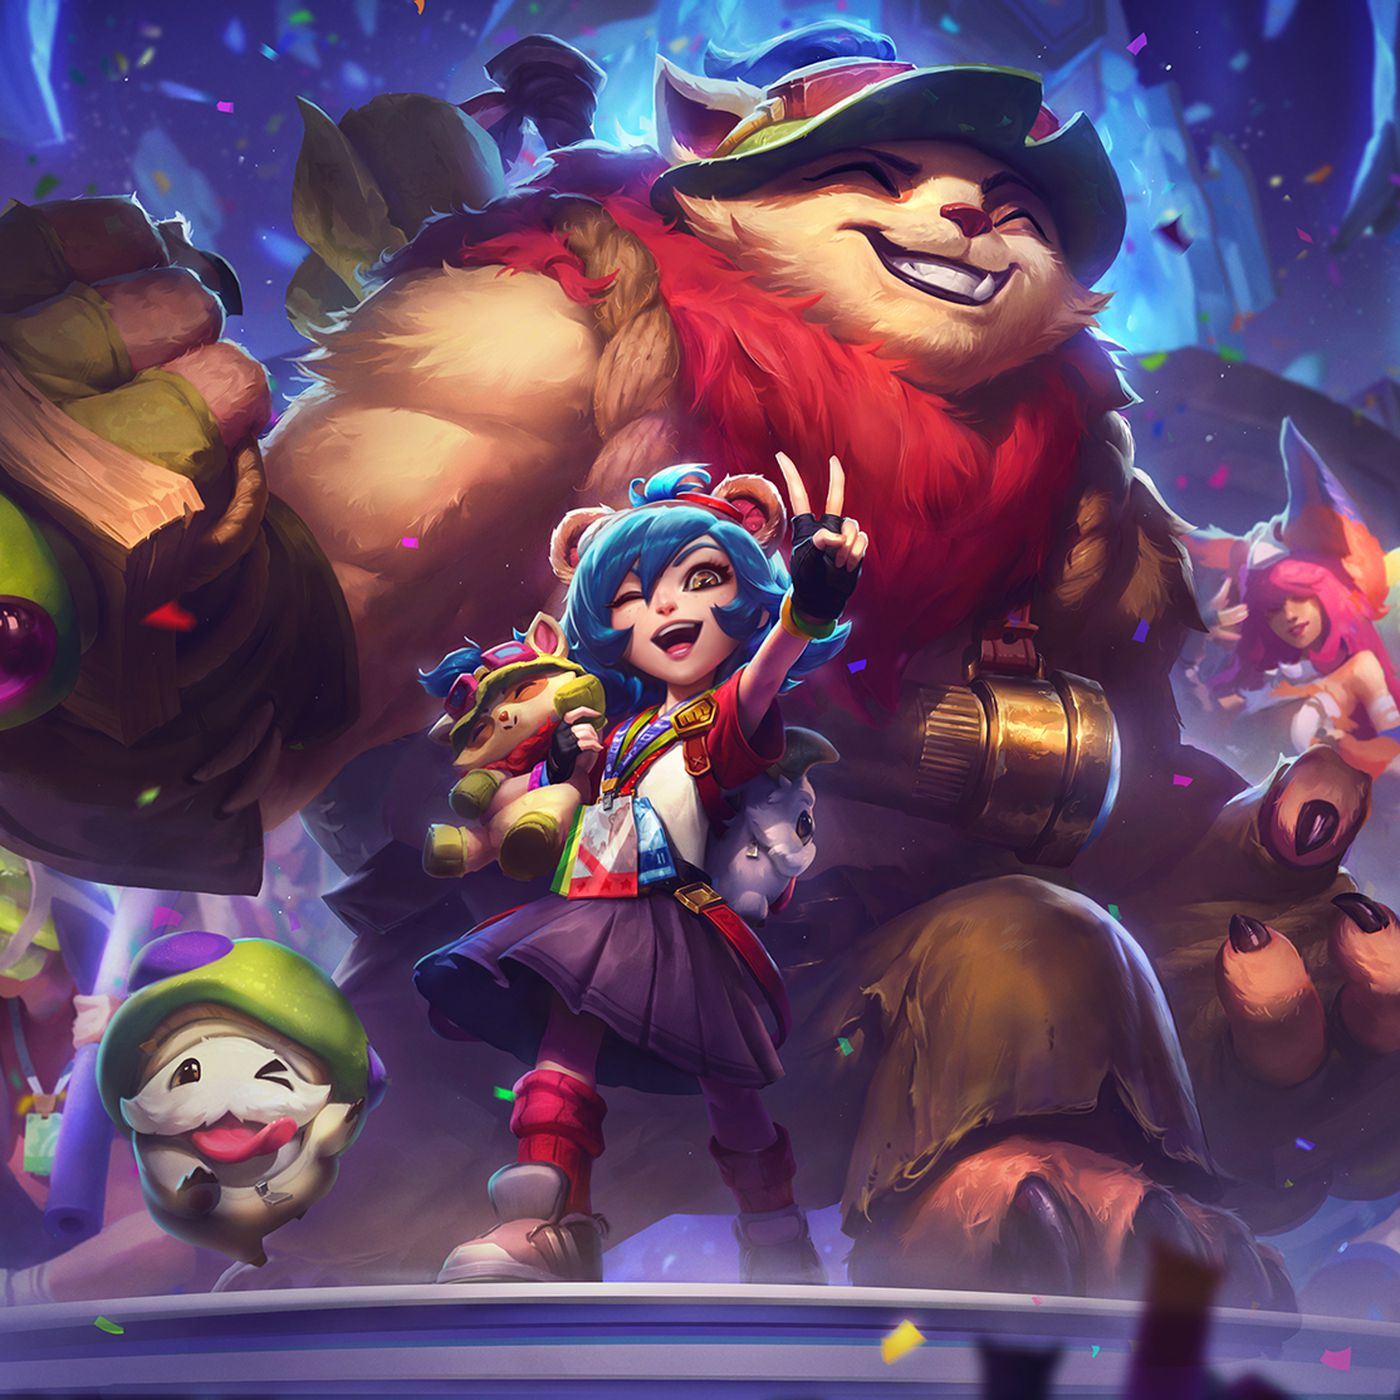 League Of Legends New Annie Versary Skin Turns Tibbers Into Buff Teemo The Rift Herald